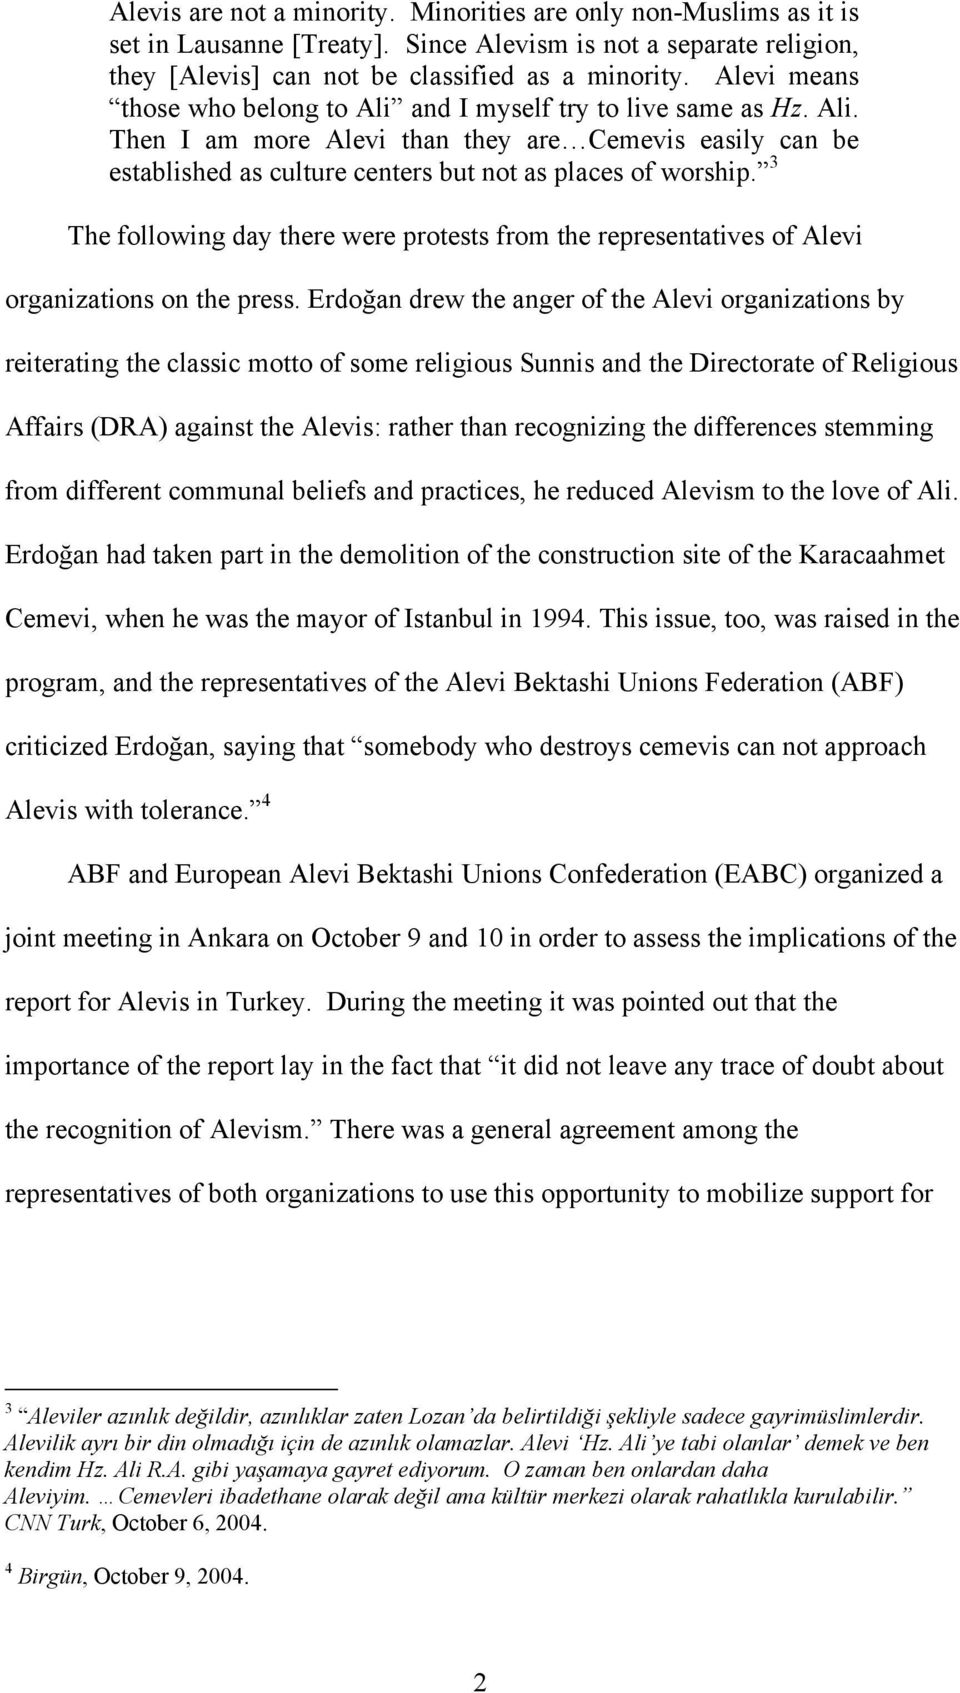 3 The following day there were protests from the representatives of Alevi organizations on the press.